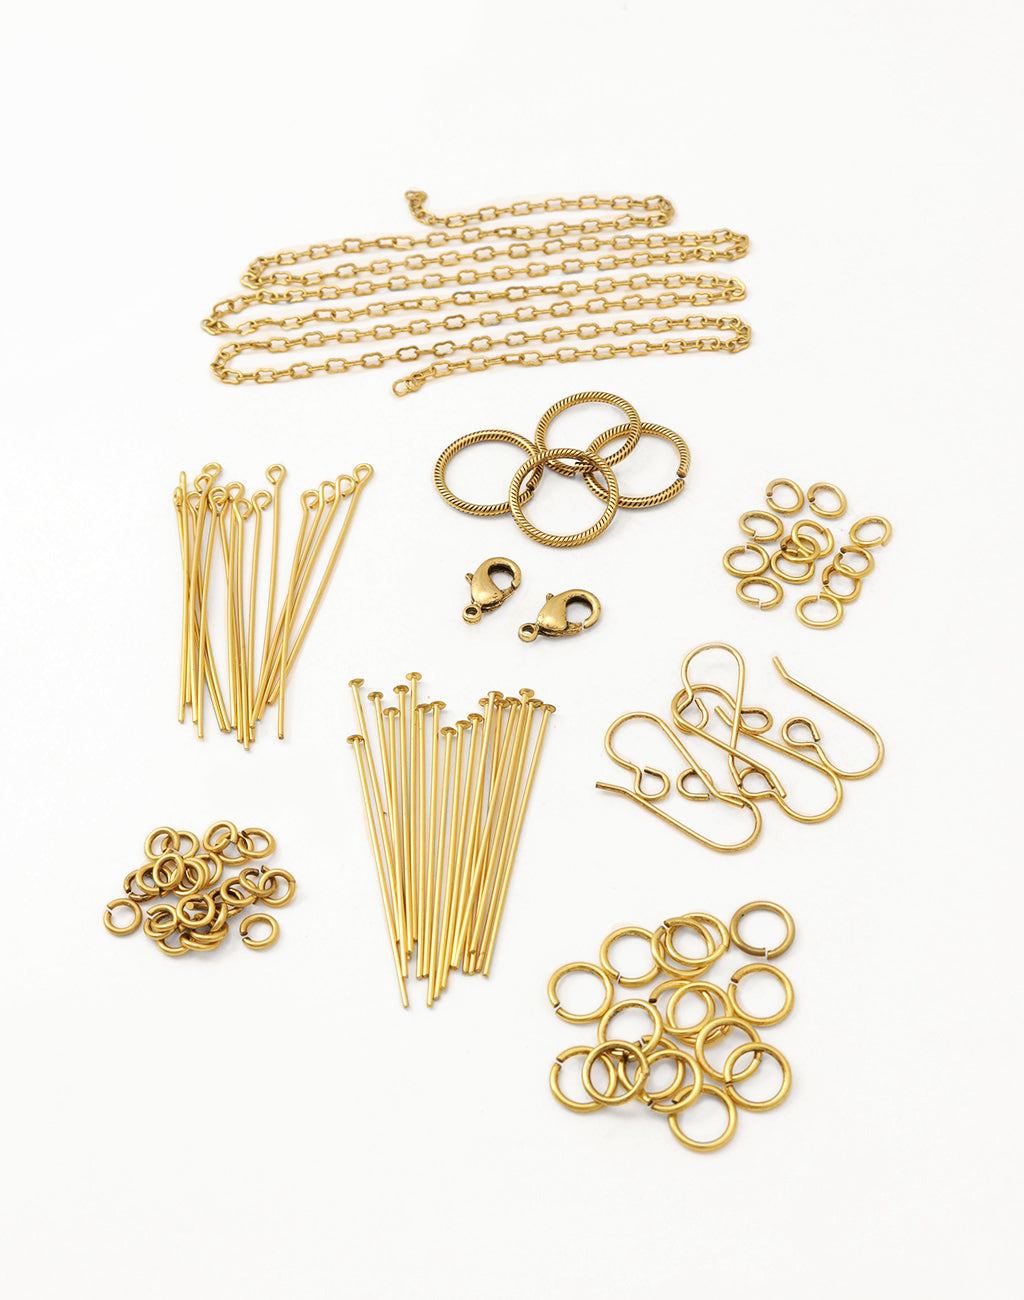 14K Gold Antique Basics Findings Kit